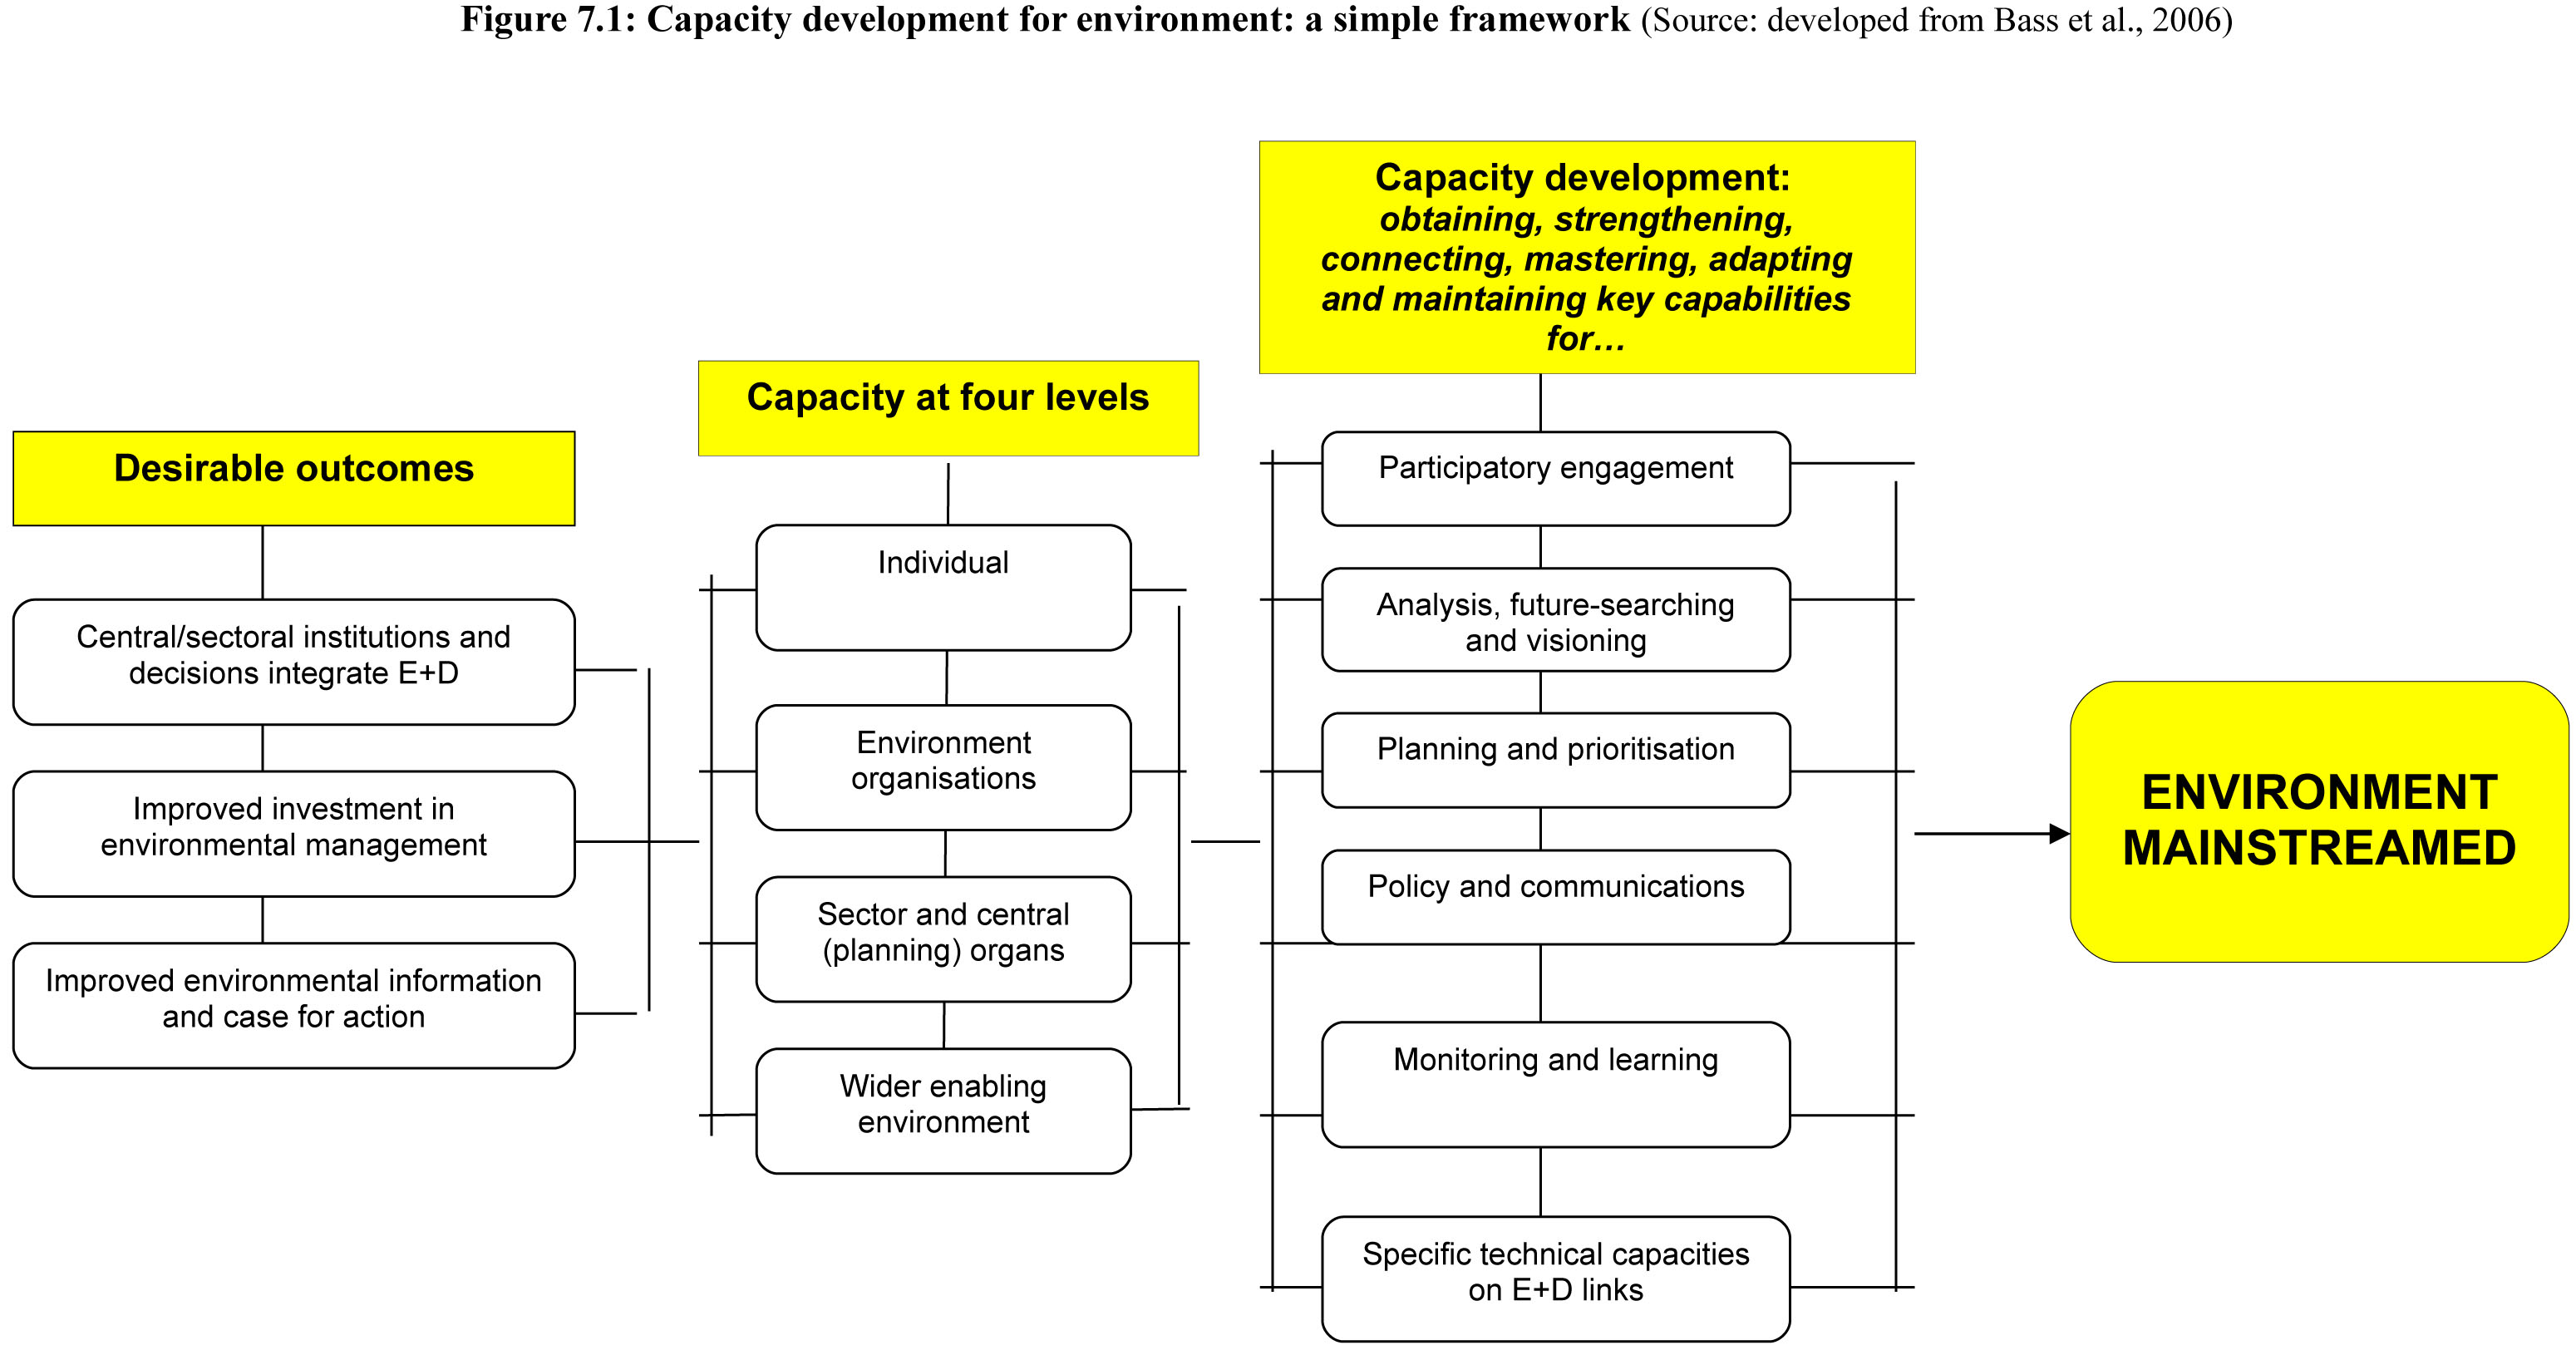 Capacity development for environment: a simple framework